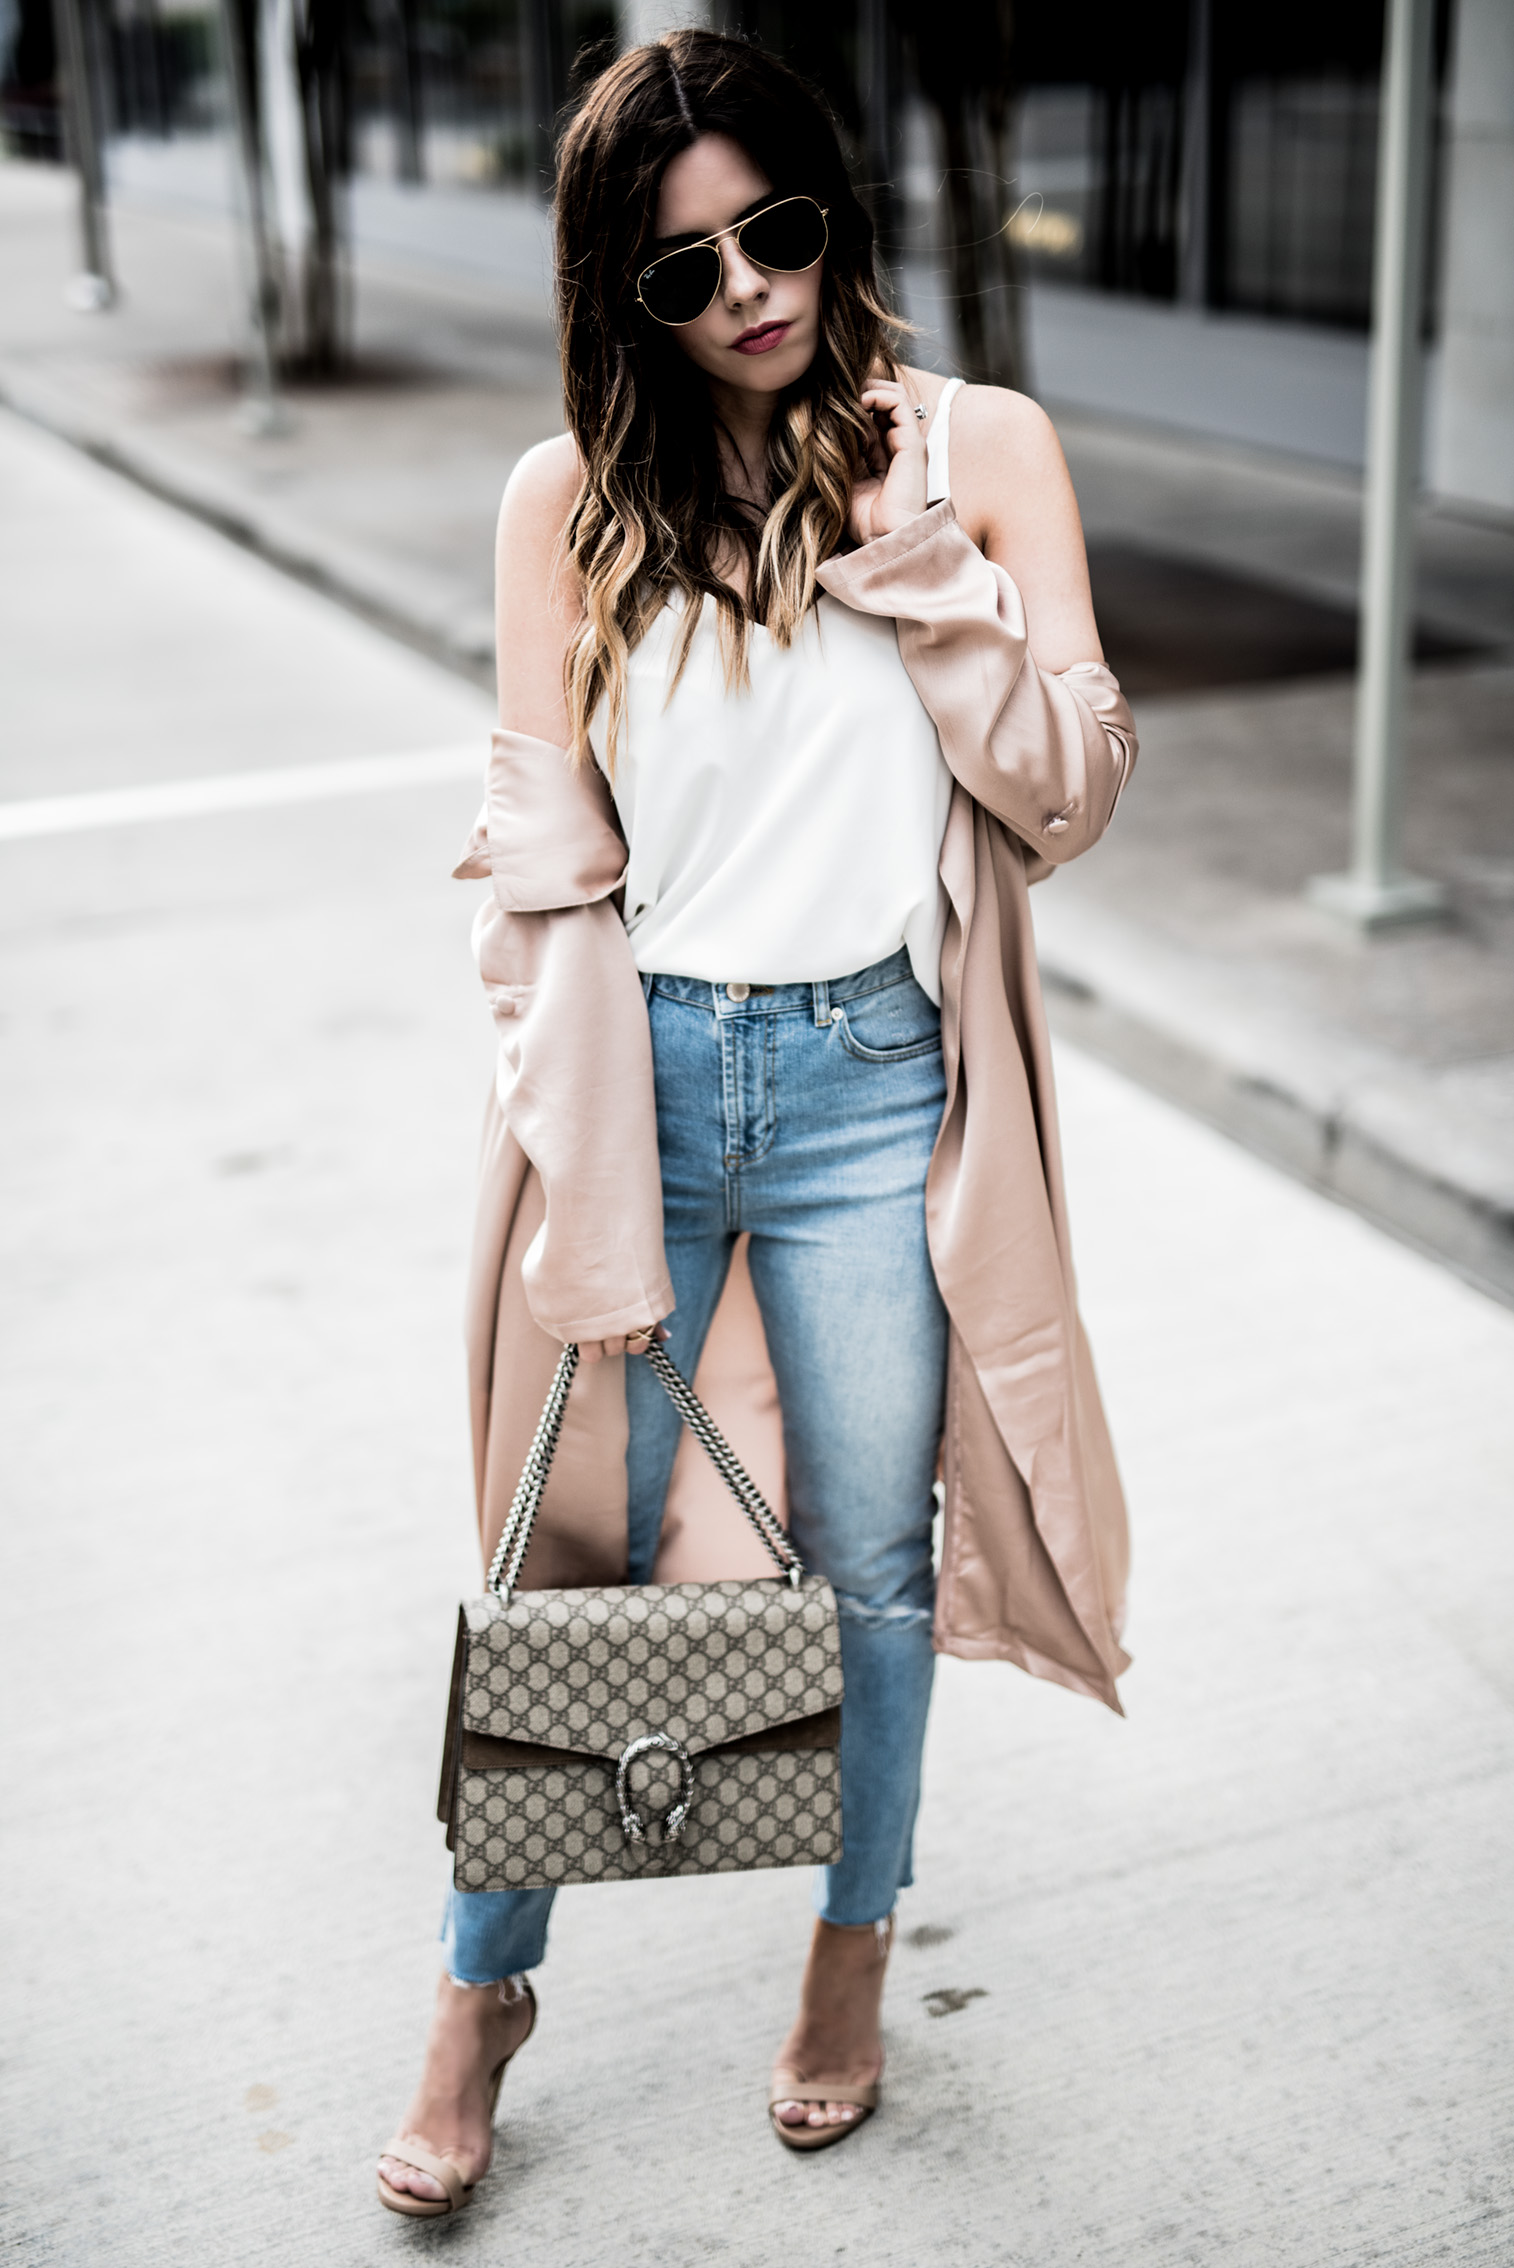 Houston fashion and lifestyle blogger Tiffany Jais | How to add light layers in the spring time, spring outfit ideas, gucci dionysus bag, straight leg denim jeans, satin duster jacket